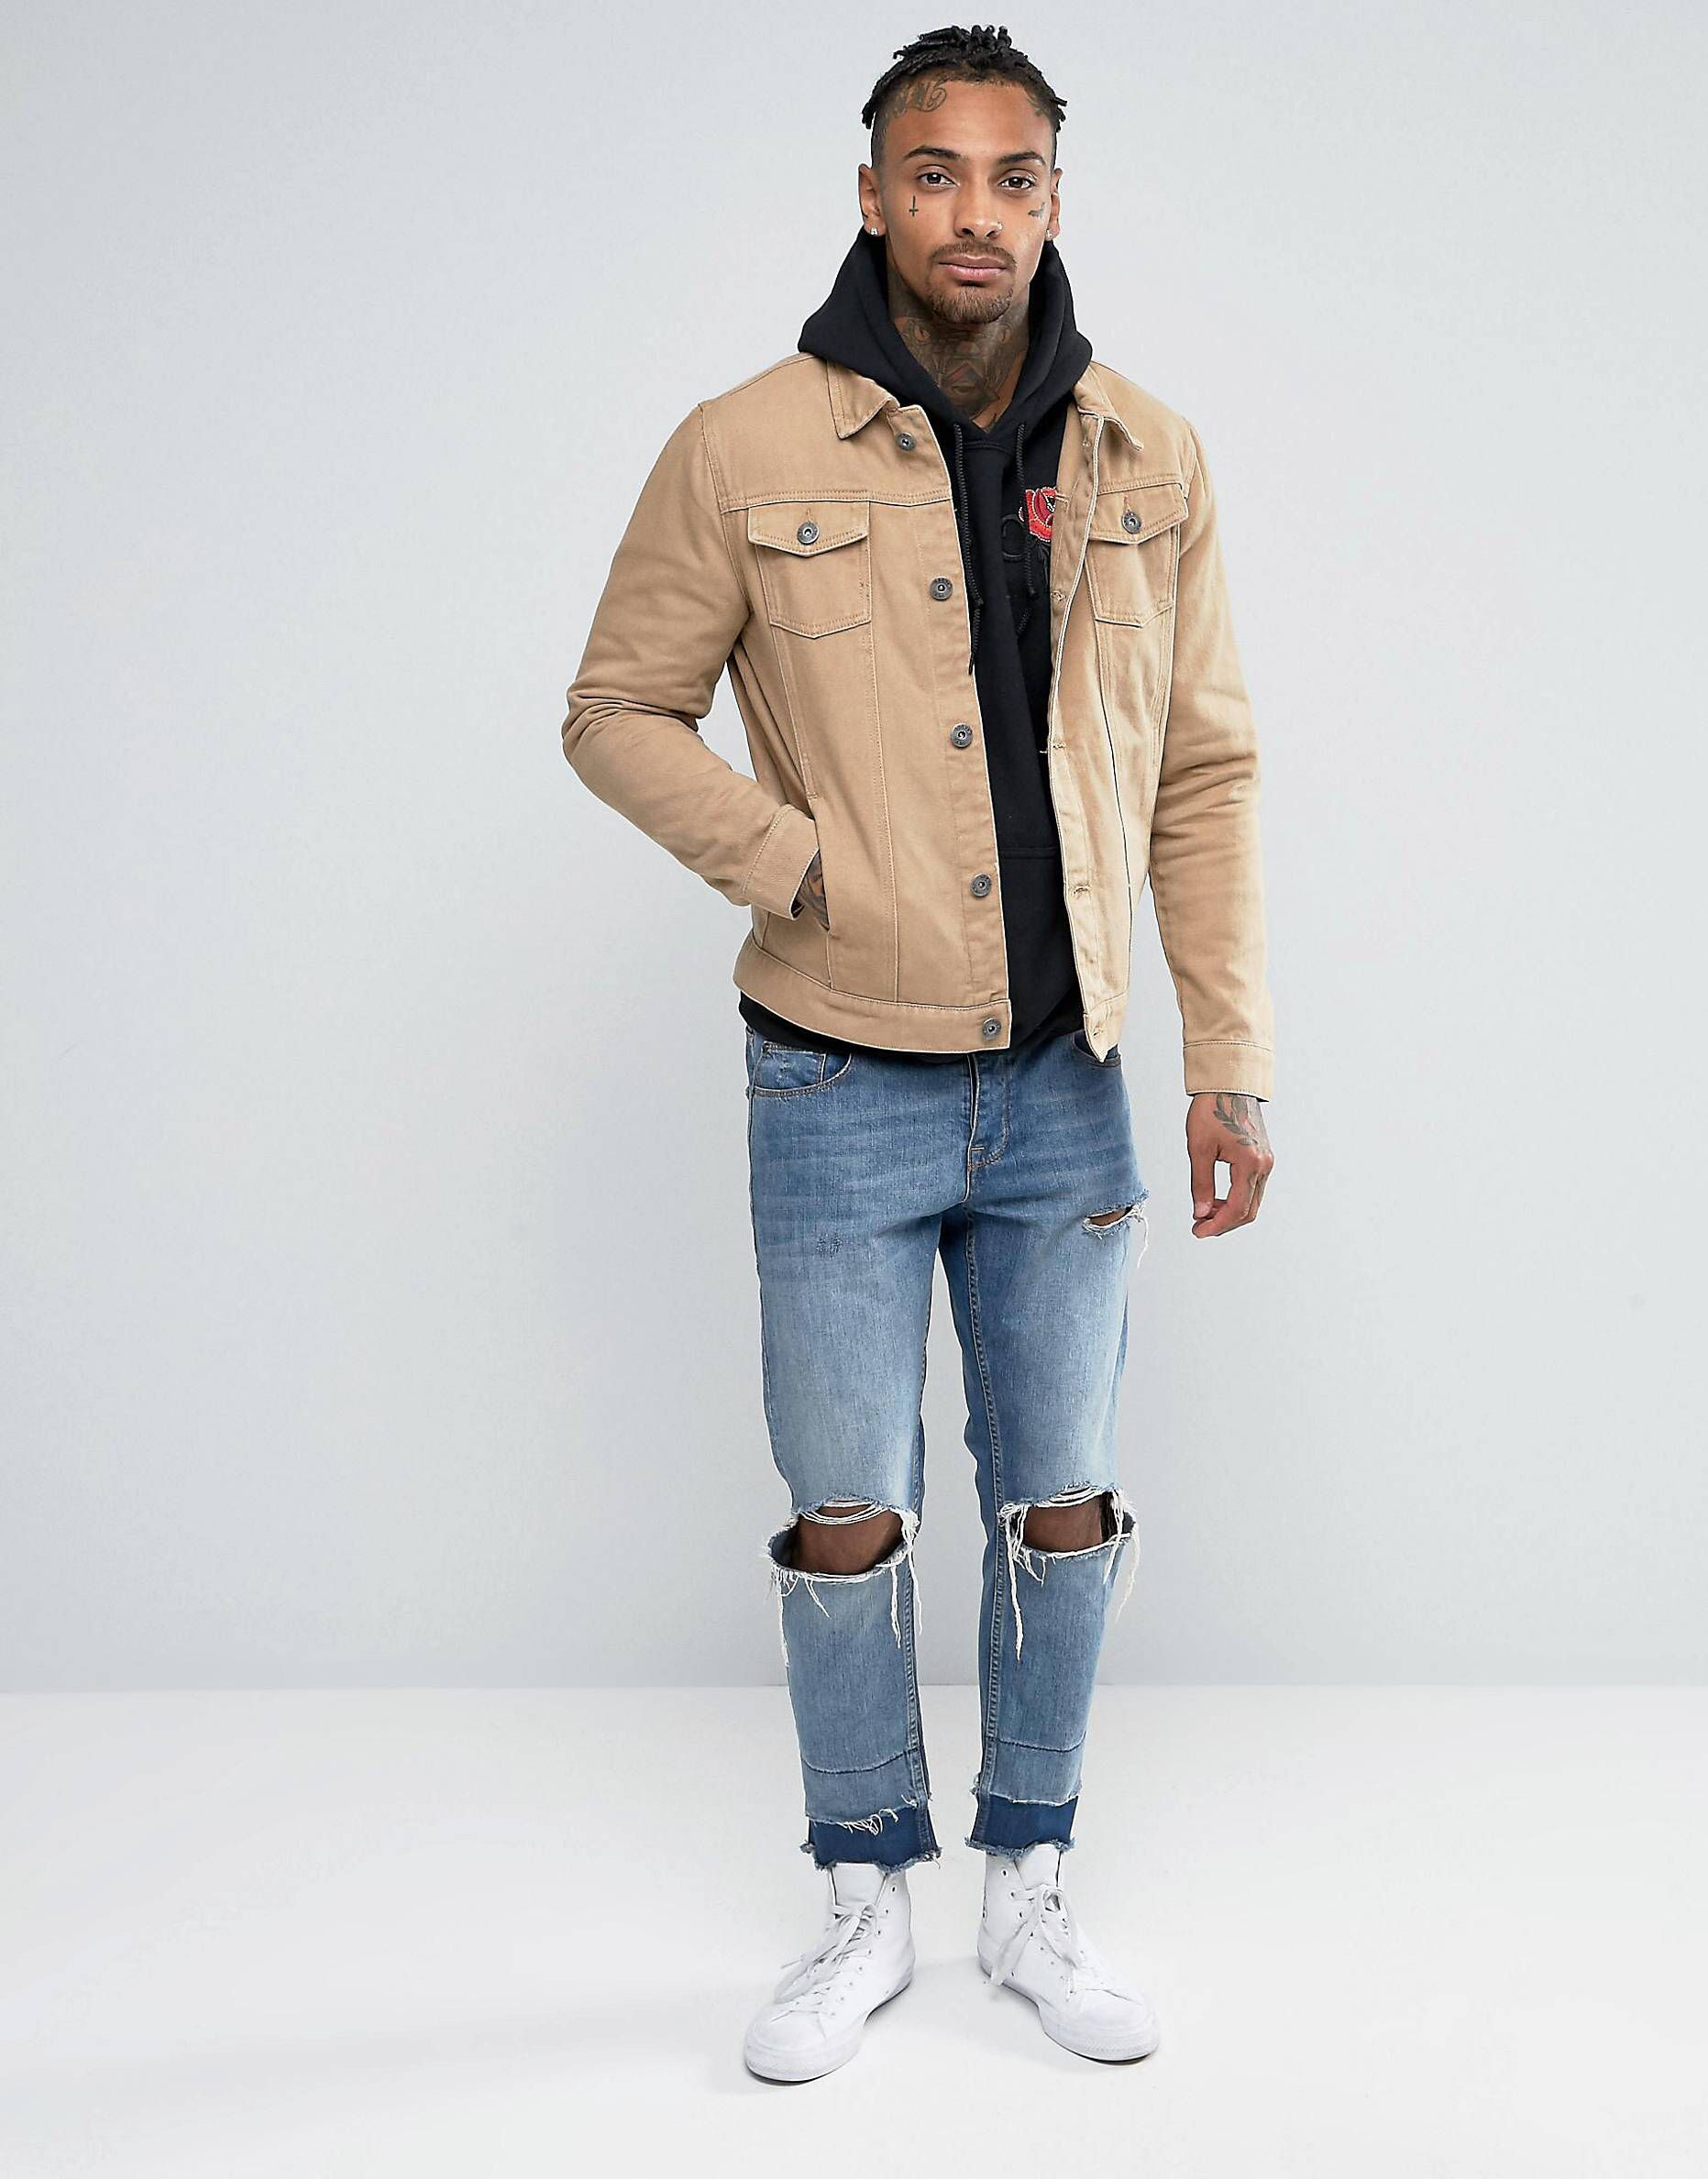 Just When I Thought I Didn T Need Something New From Asos I Kinda Do Tan Denim Jacket Tan Jacket Outfit Mens Tan Jacket [ 2377 x 1863 Pixel ]